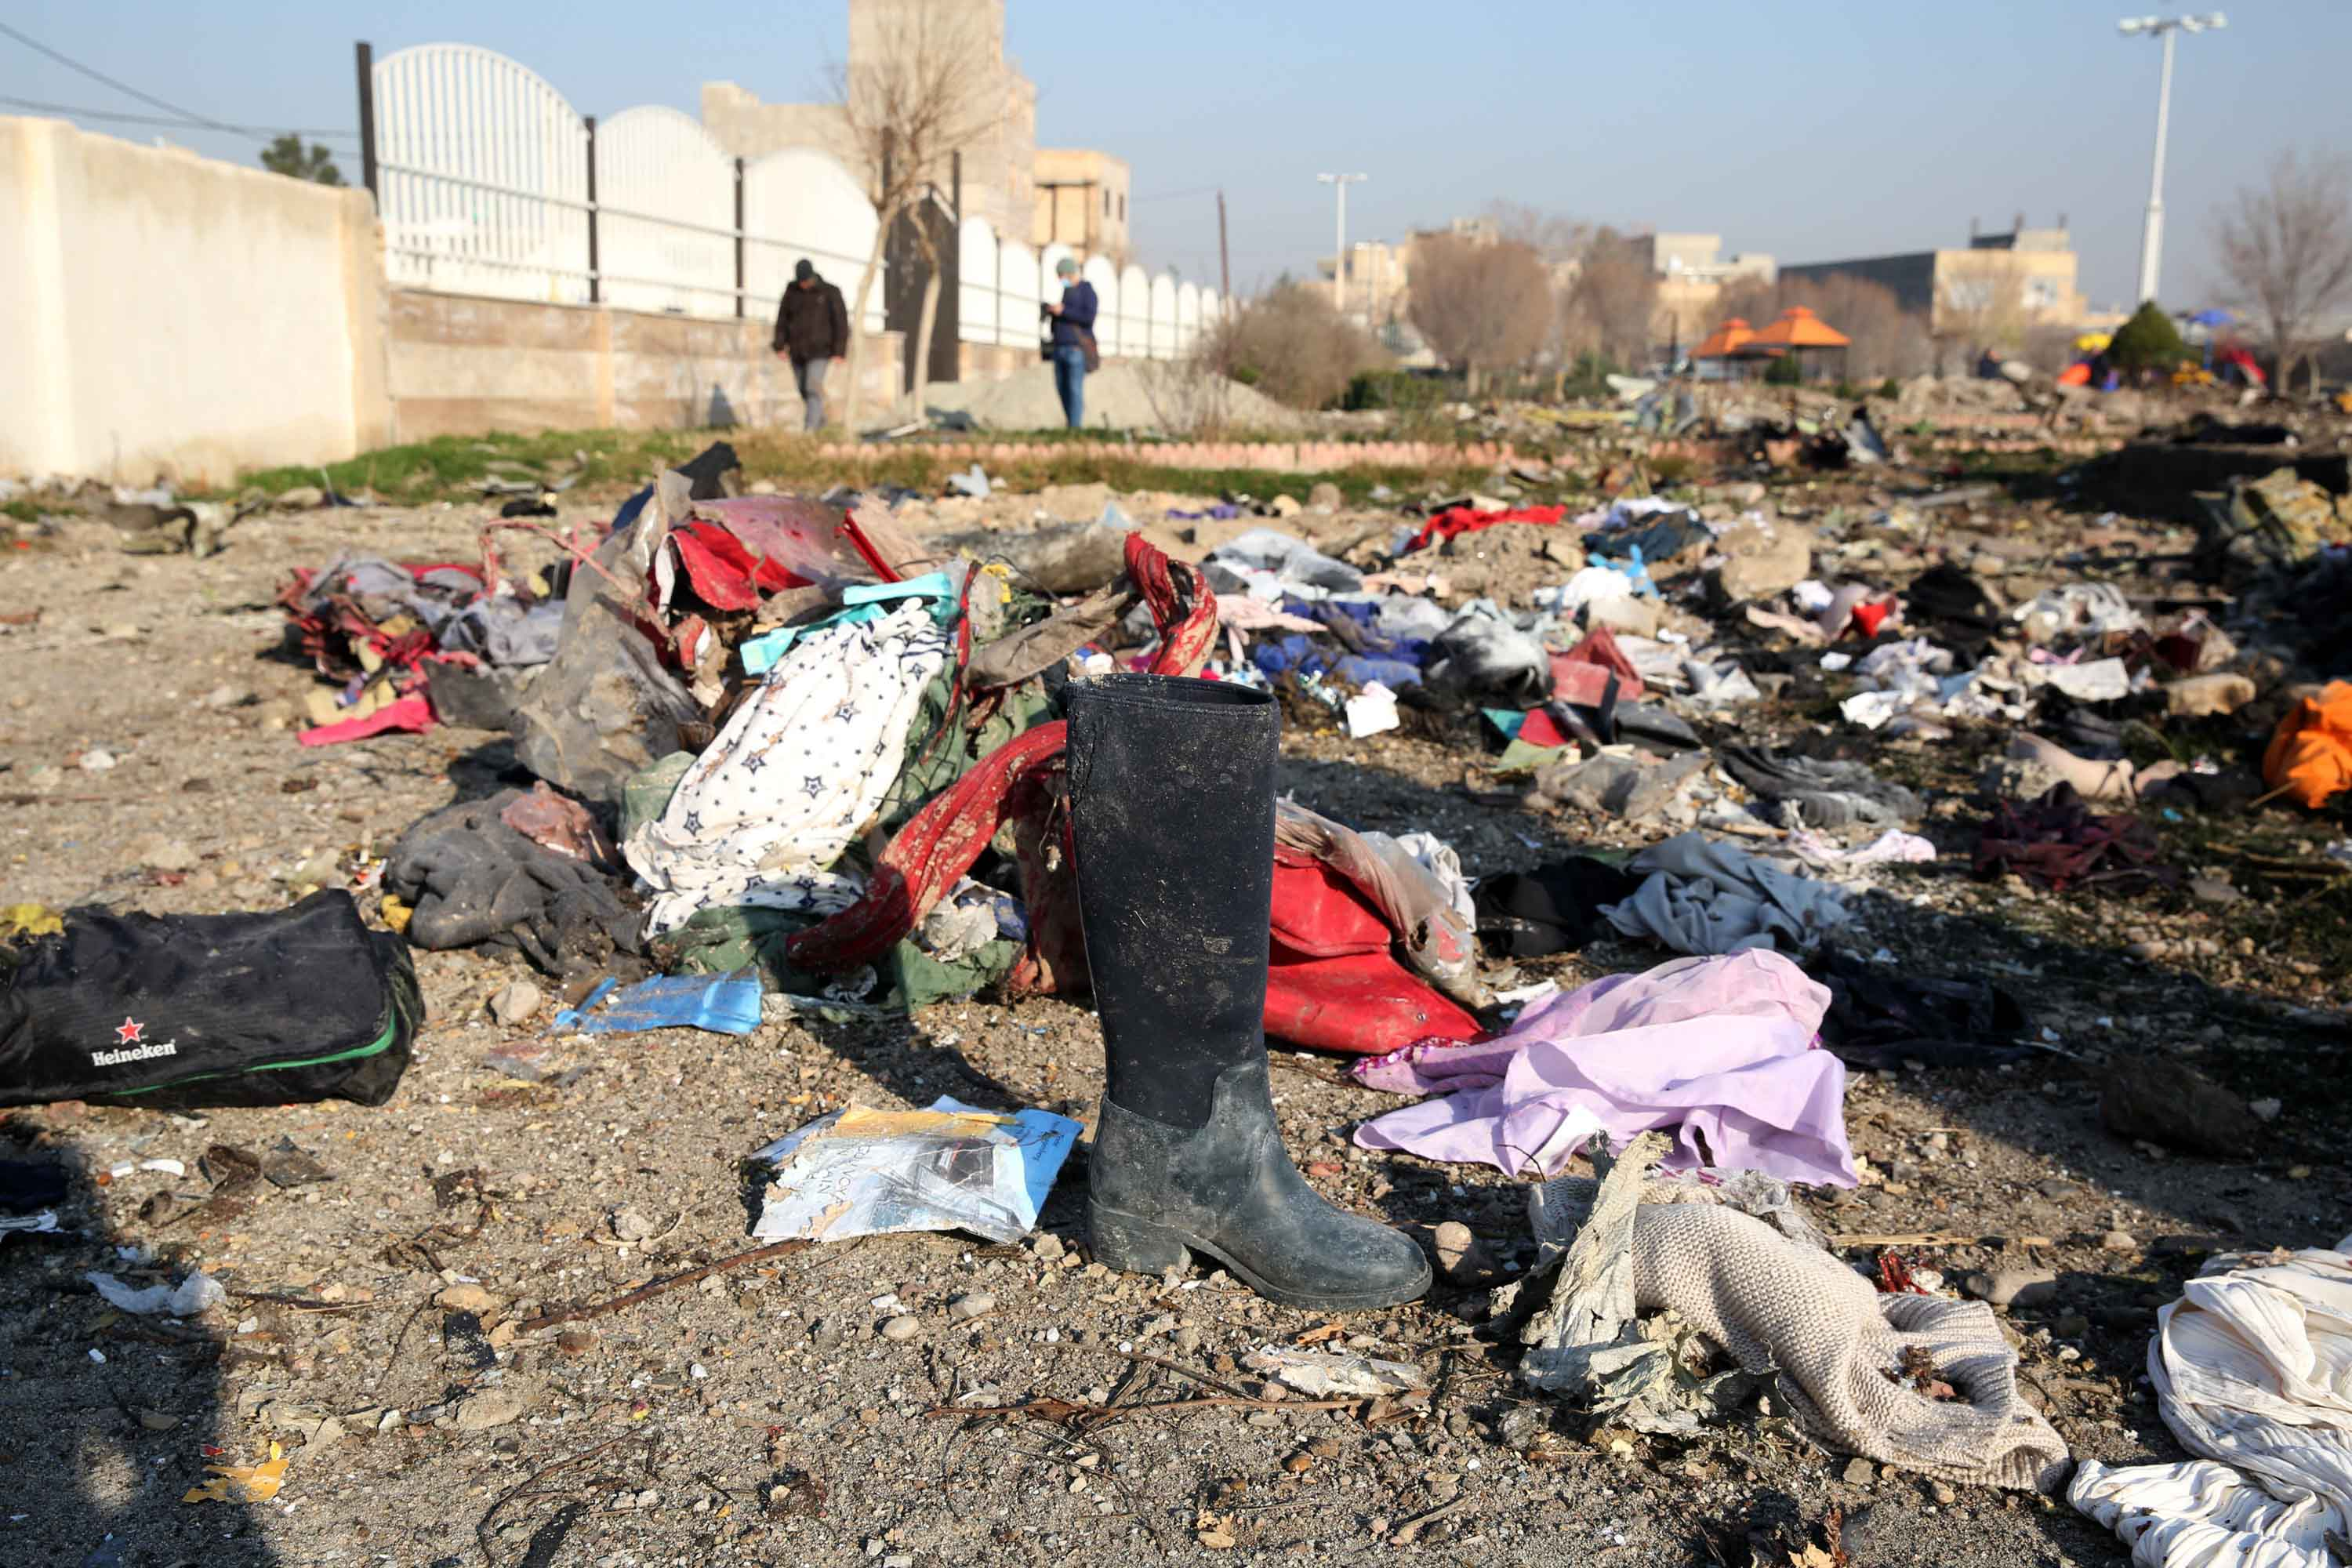 Victims' possessions are seen scattered at the crash site.